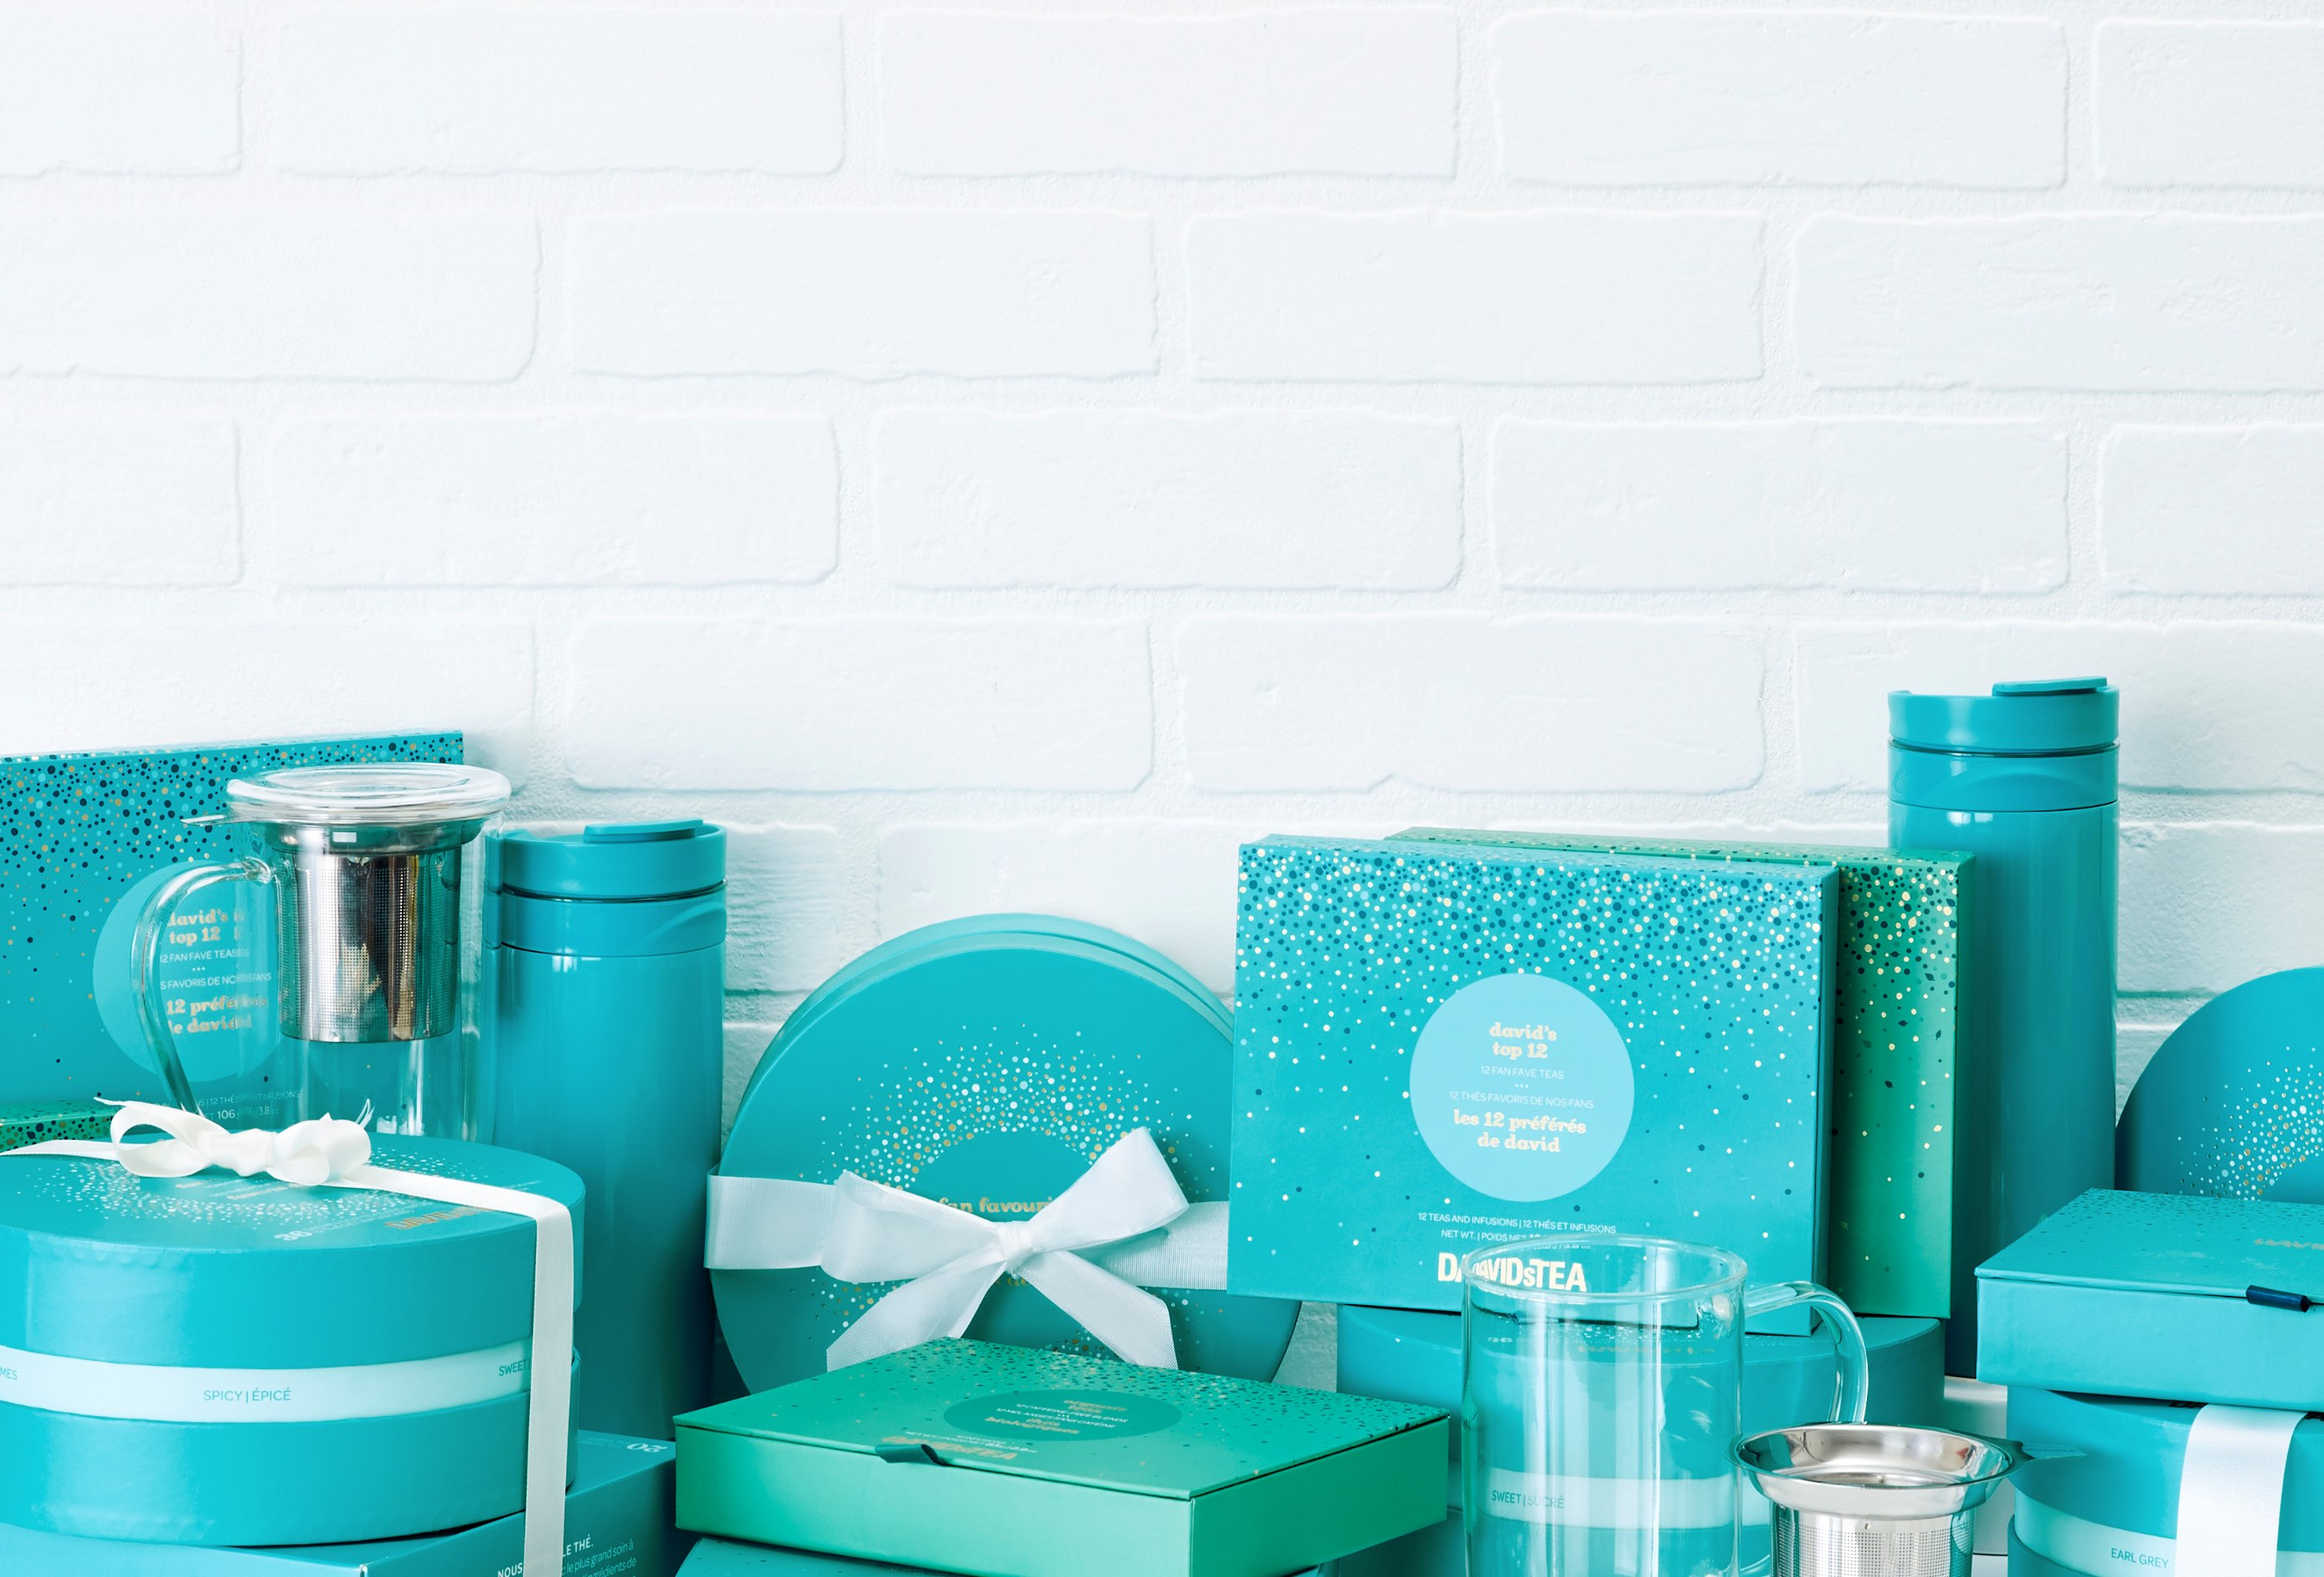 Assortment of teal tea gift sets, ready-to-gift tea samplers, clear 16 oz mugs with tea infusers, 16 oz teal travel mugs.